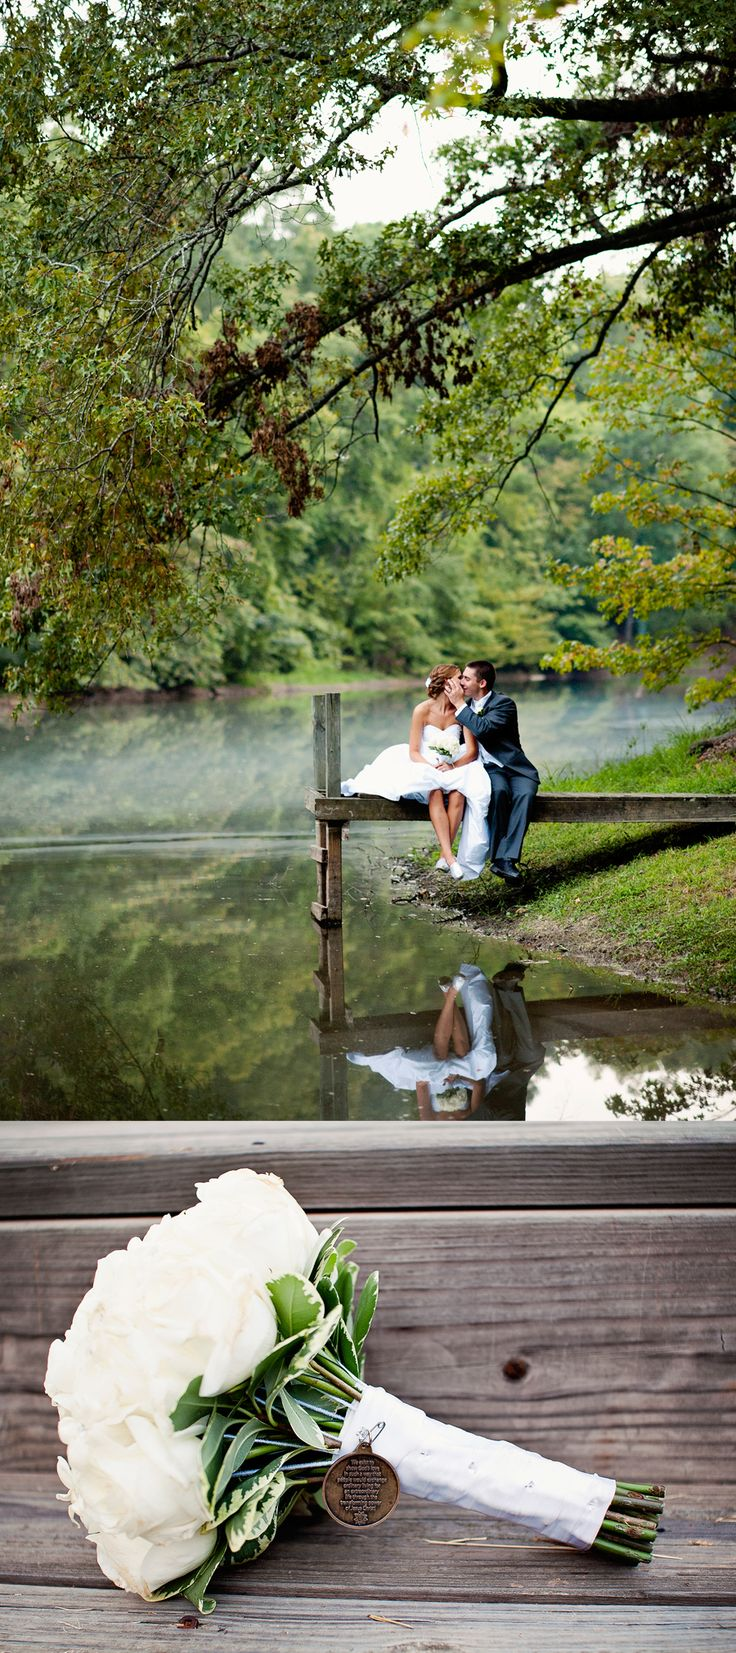 not sure i like the bottom section, i would just love the picture of them on the dock with the reflection! i find the bottom a bit distracting, personally, but gorgeous photo otherwise